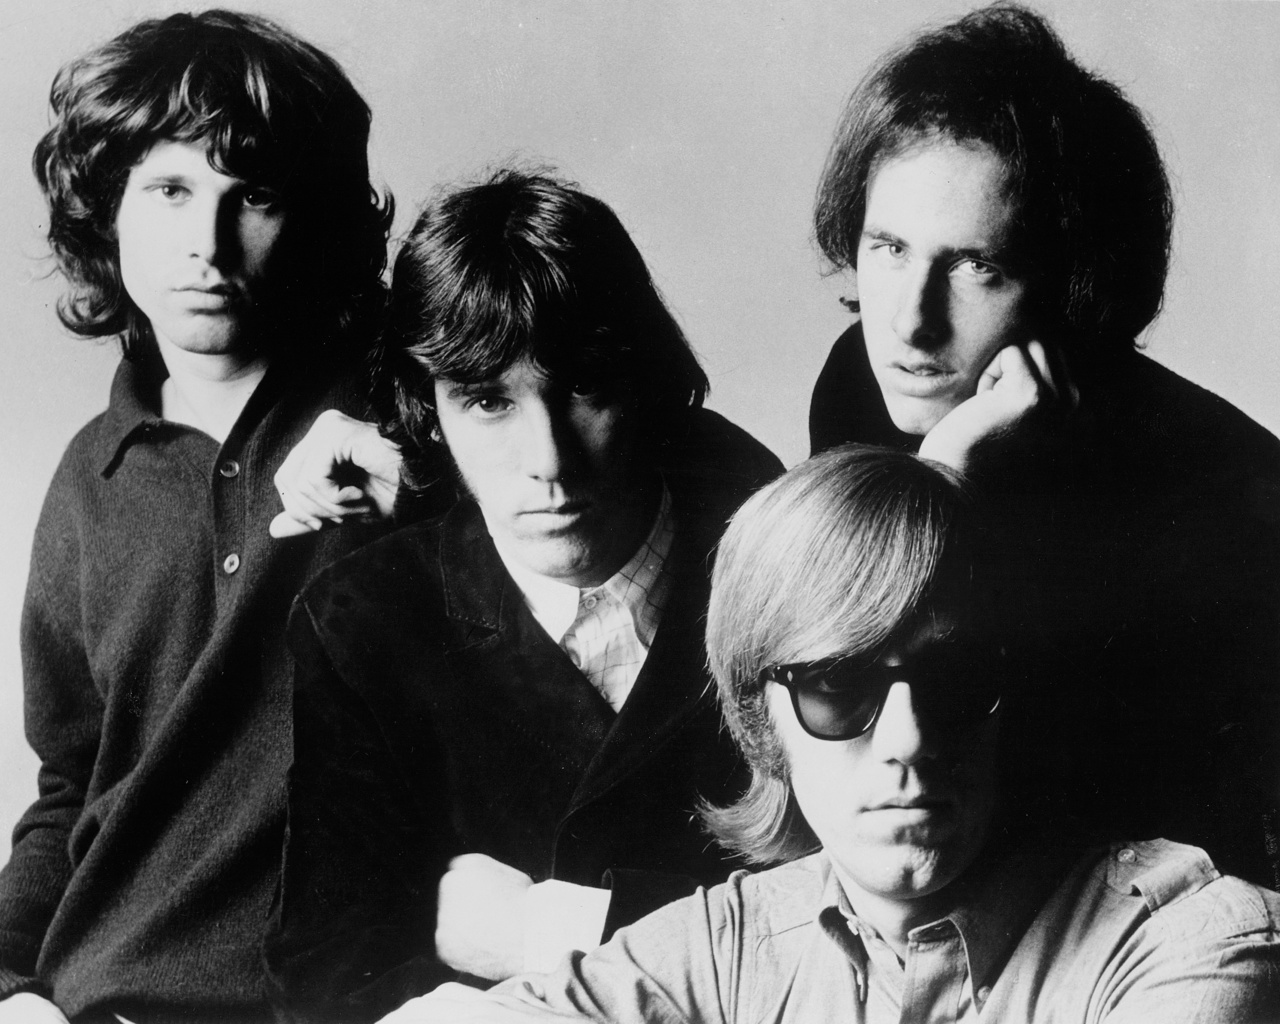 1280x1024 the doors - photo #2